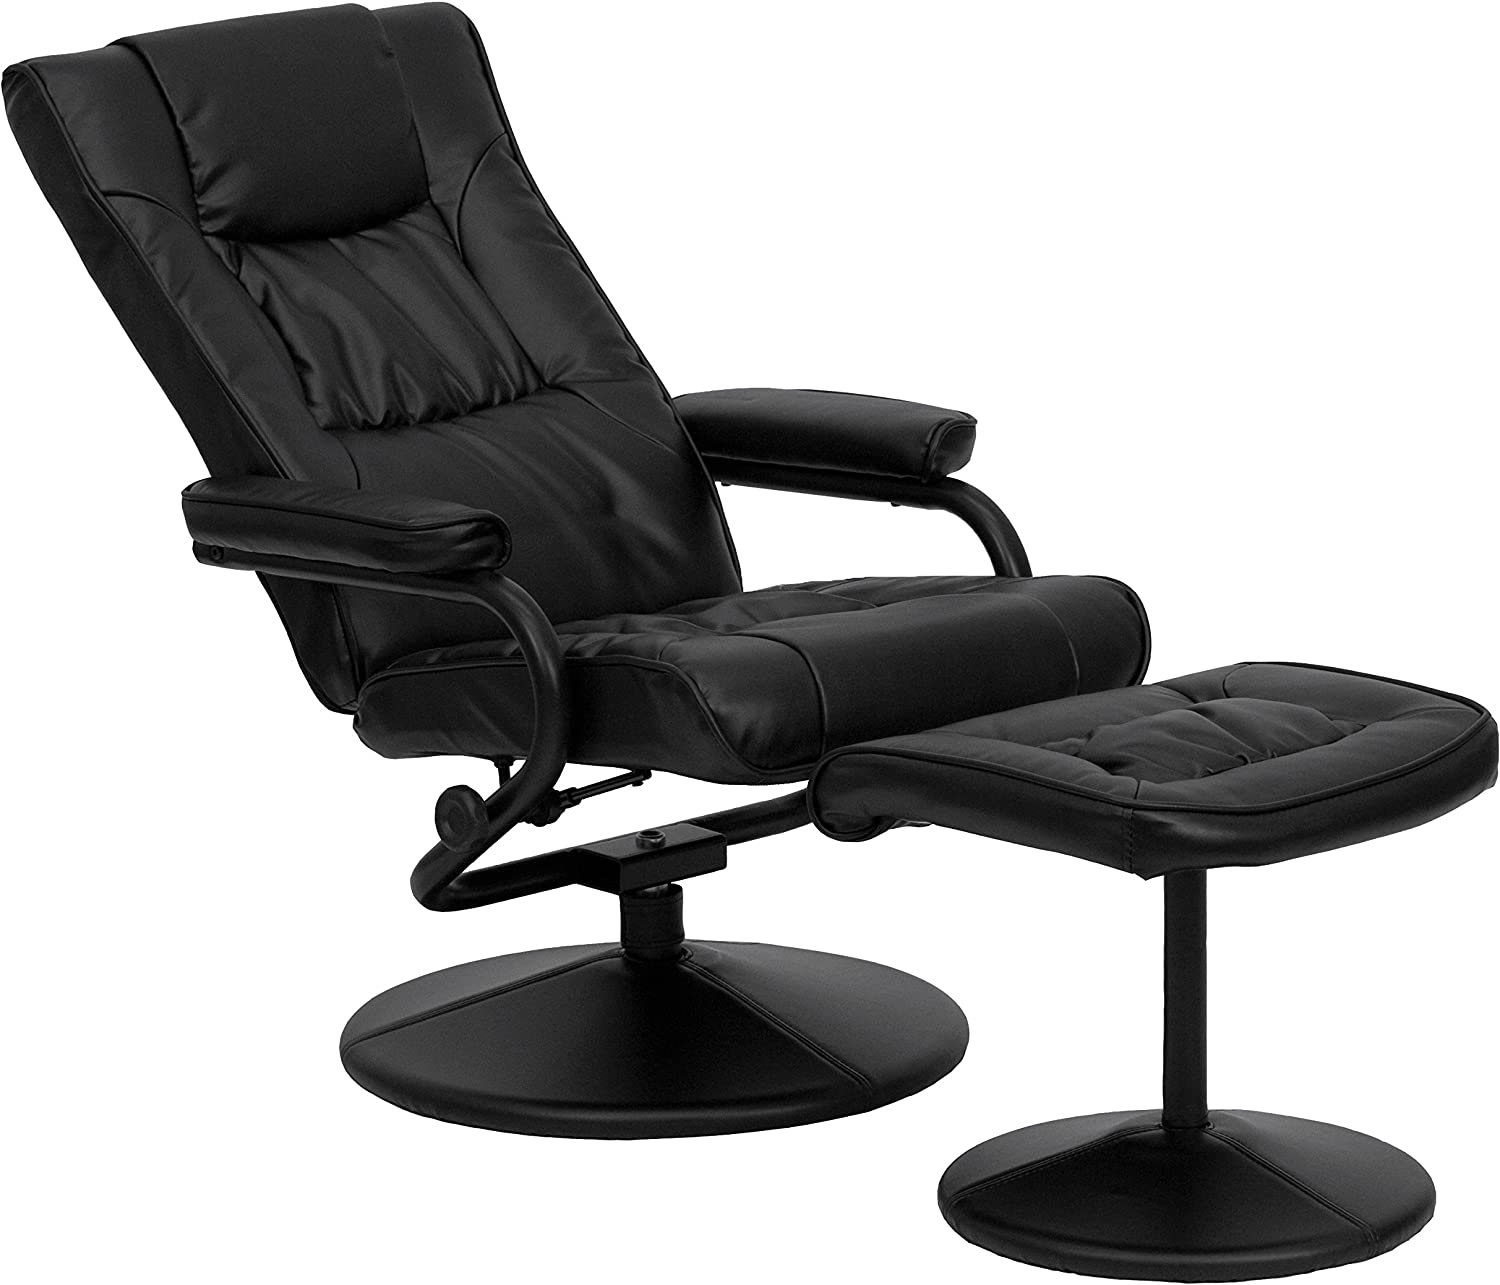 Flash Furniture BT-7862 Recliner reclined